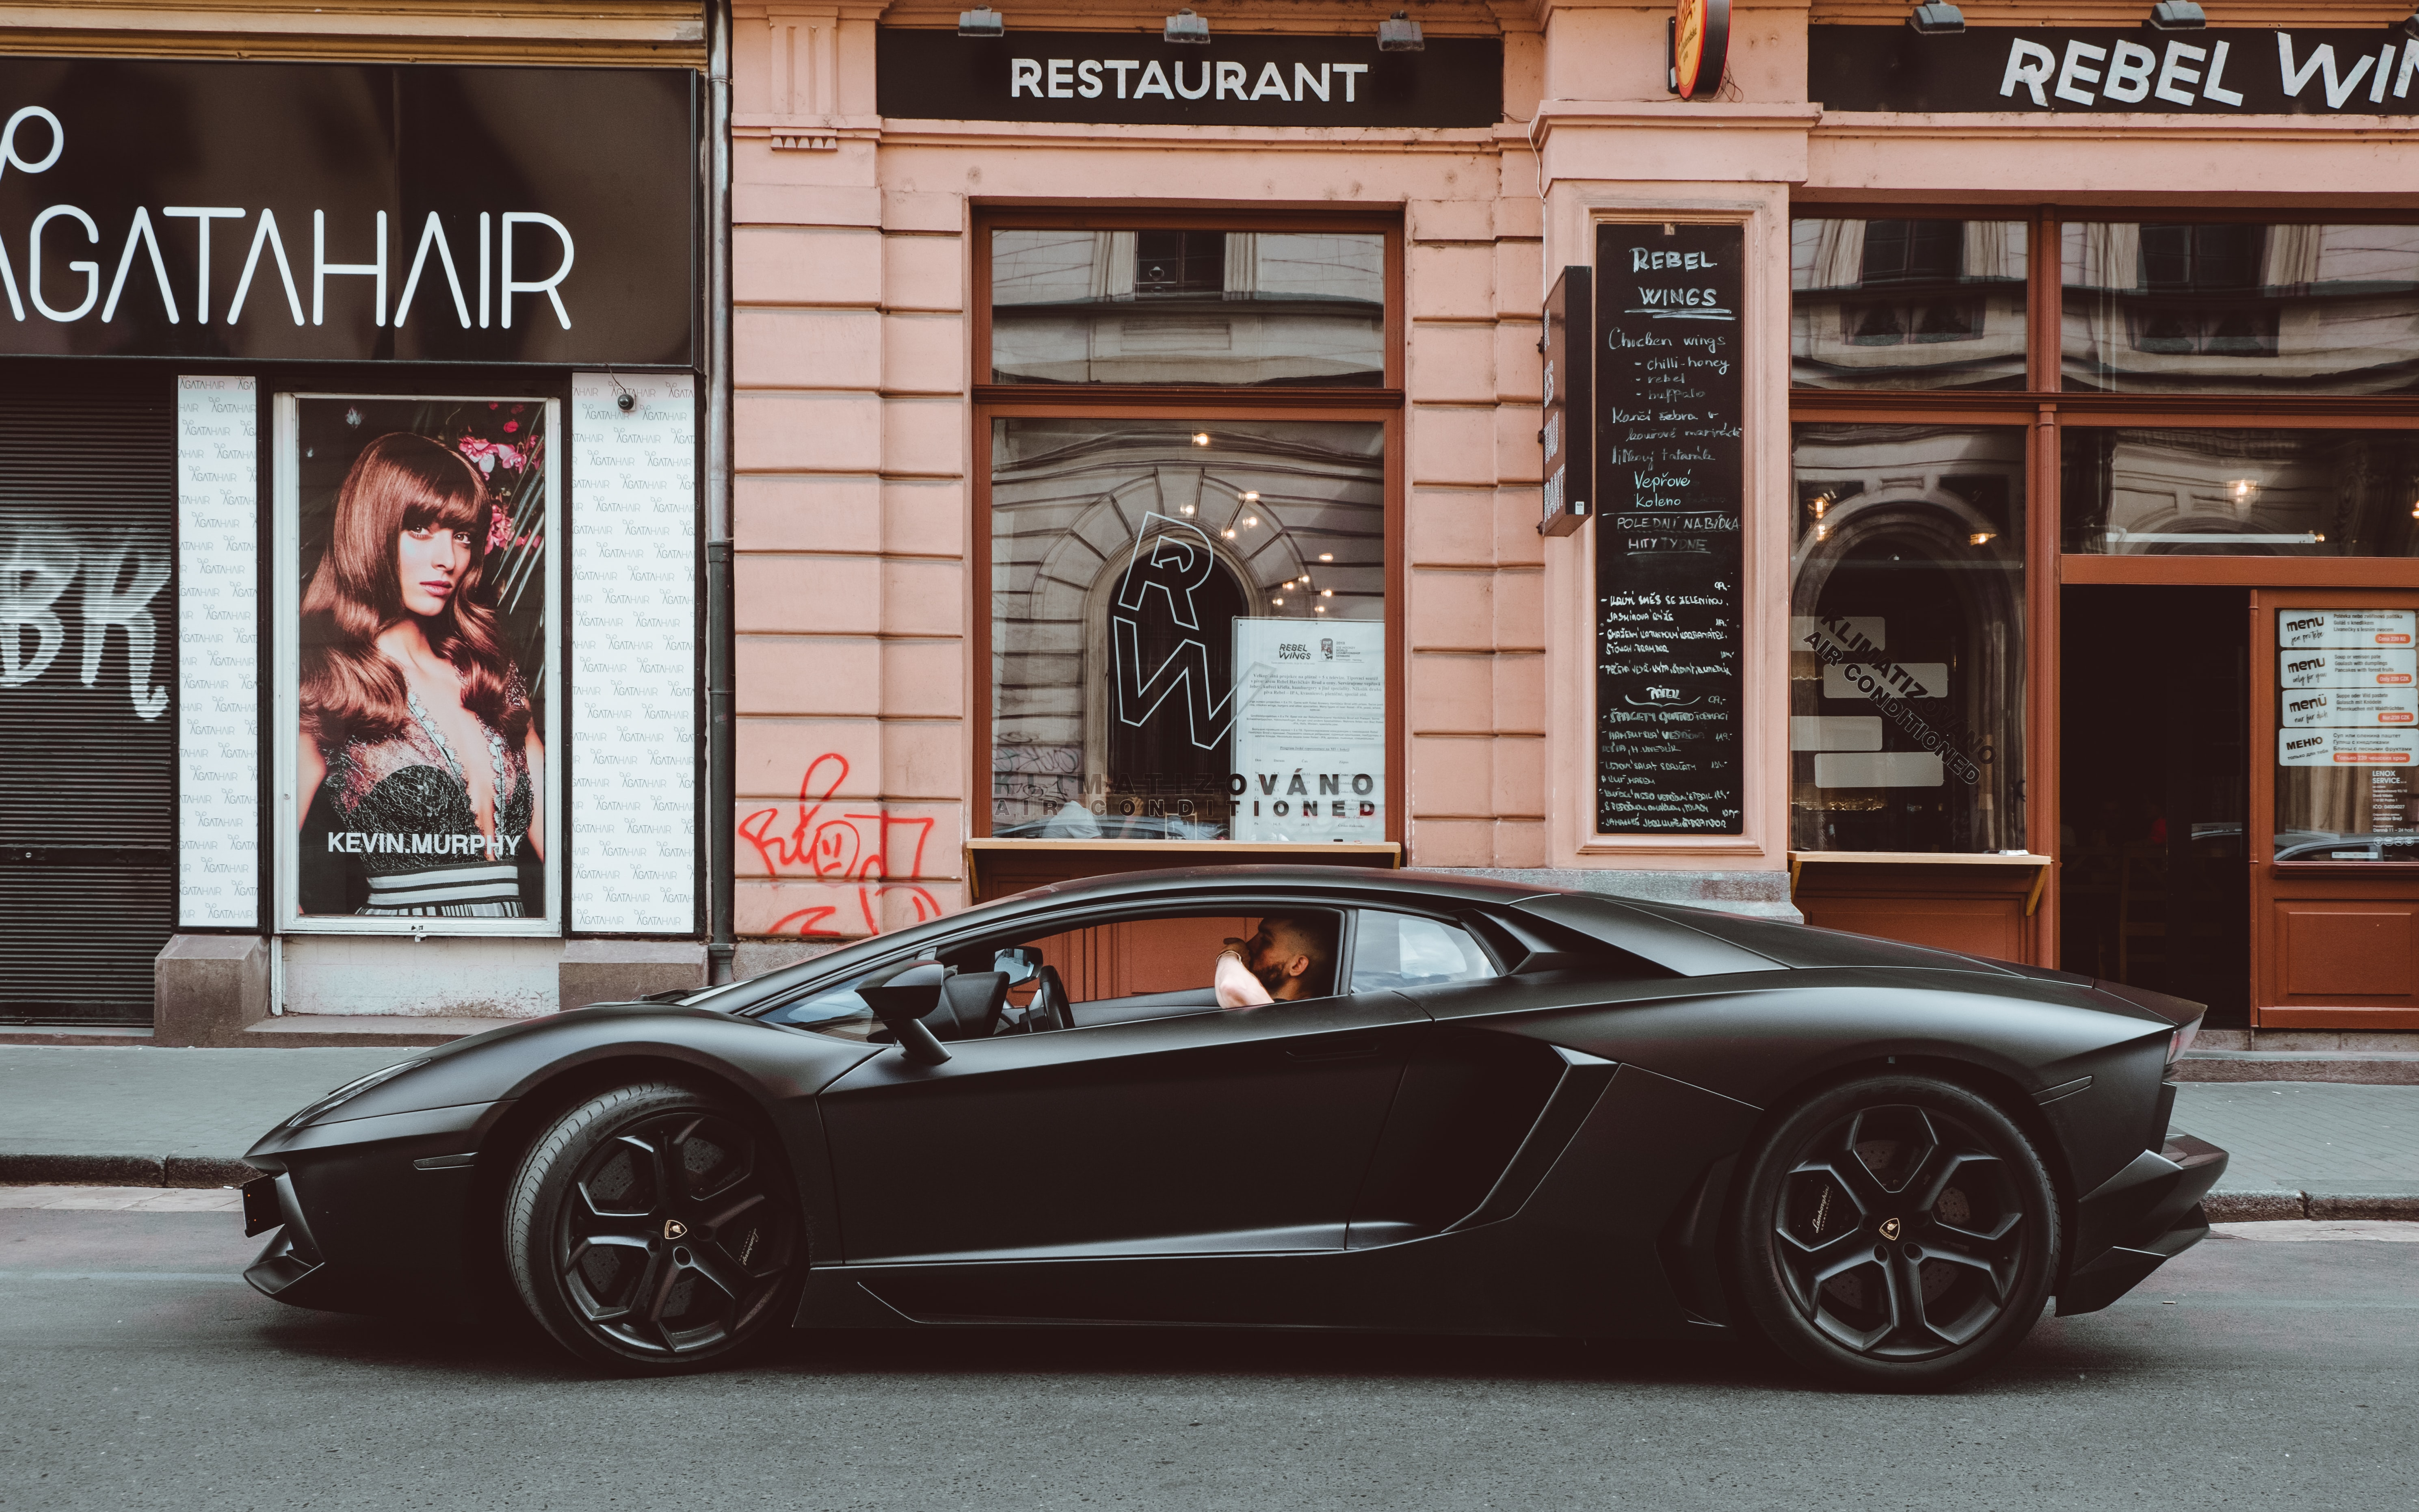 black Lamborghini on the street